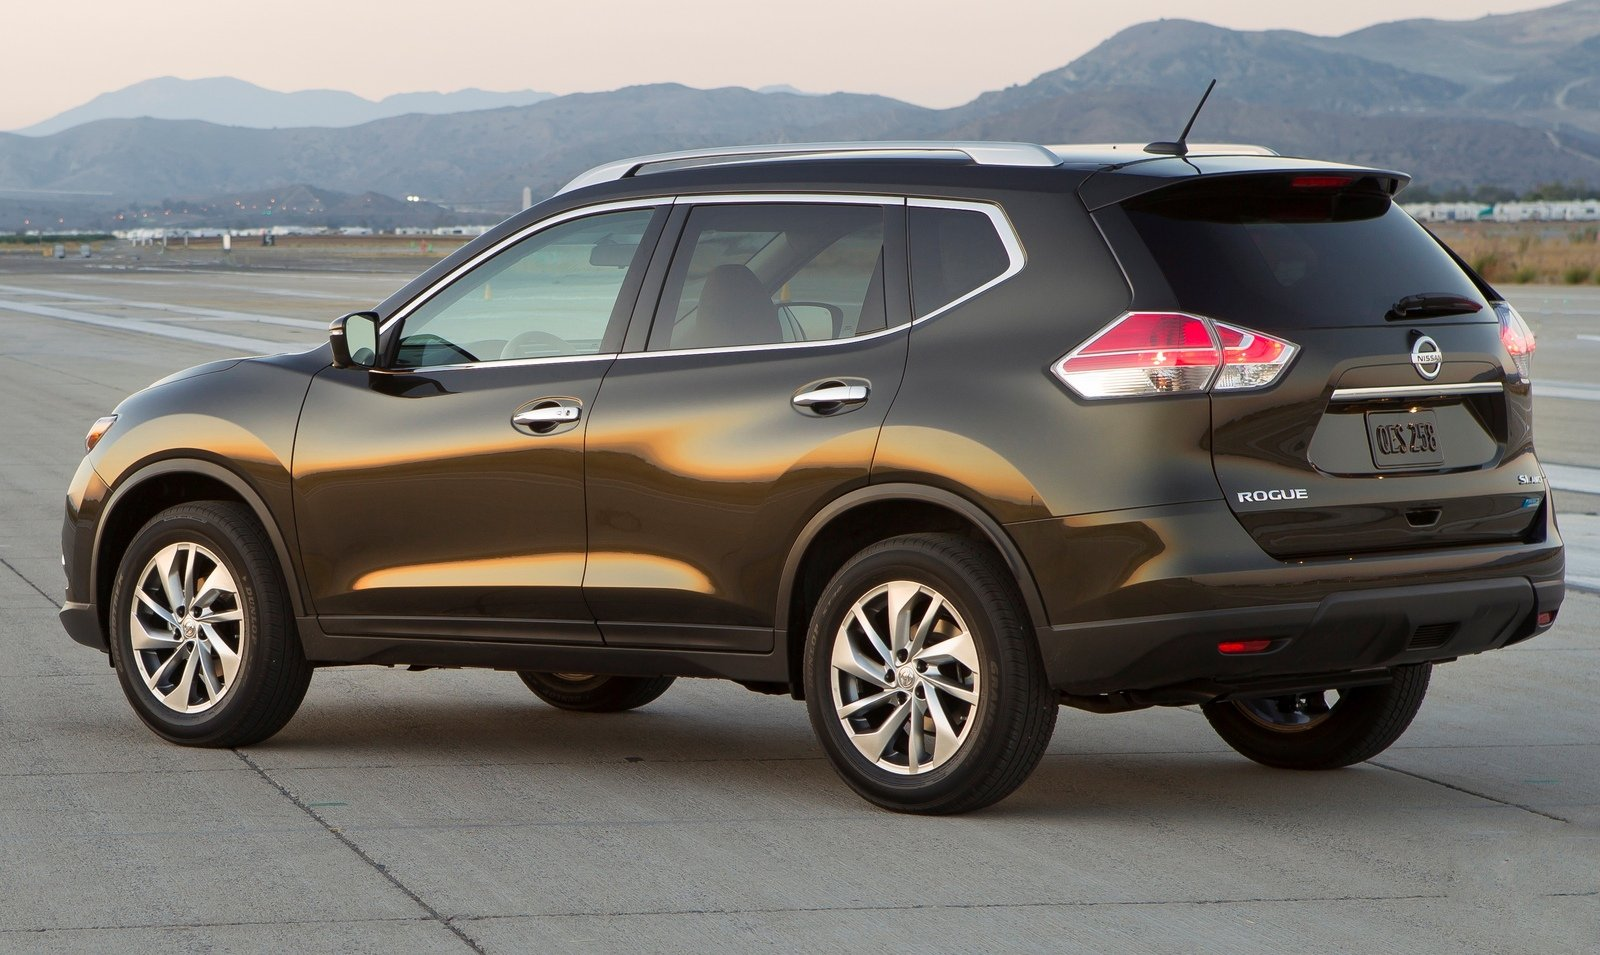 2014 nissan rogue picture 522718 car review top speed. Black Bedroom Furniture Sets. Home Design Ideas